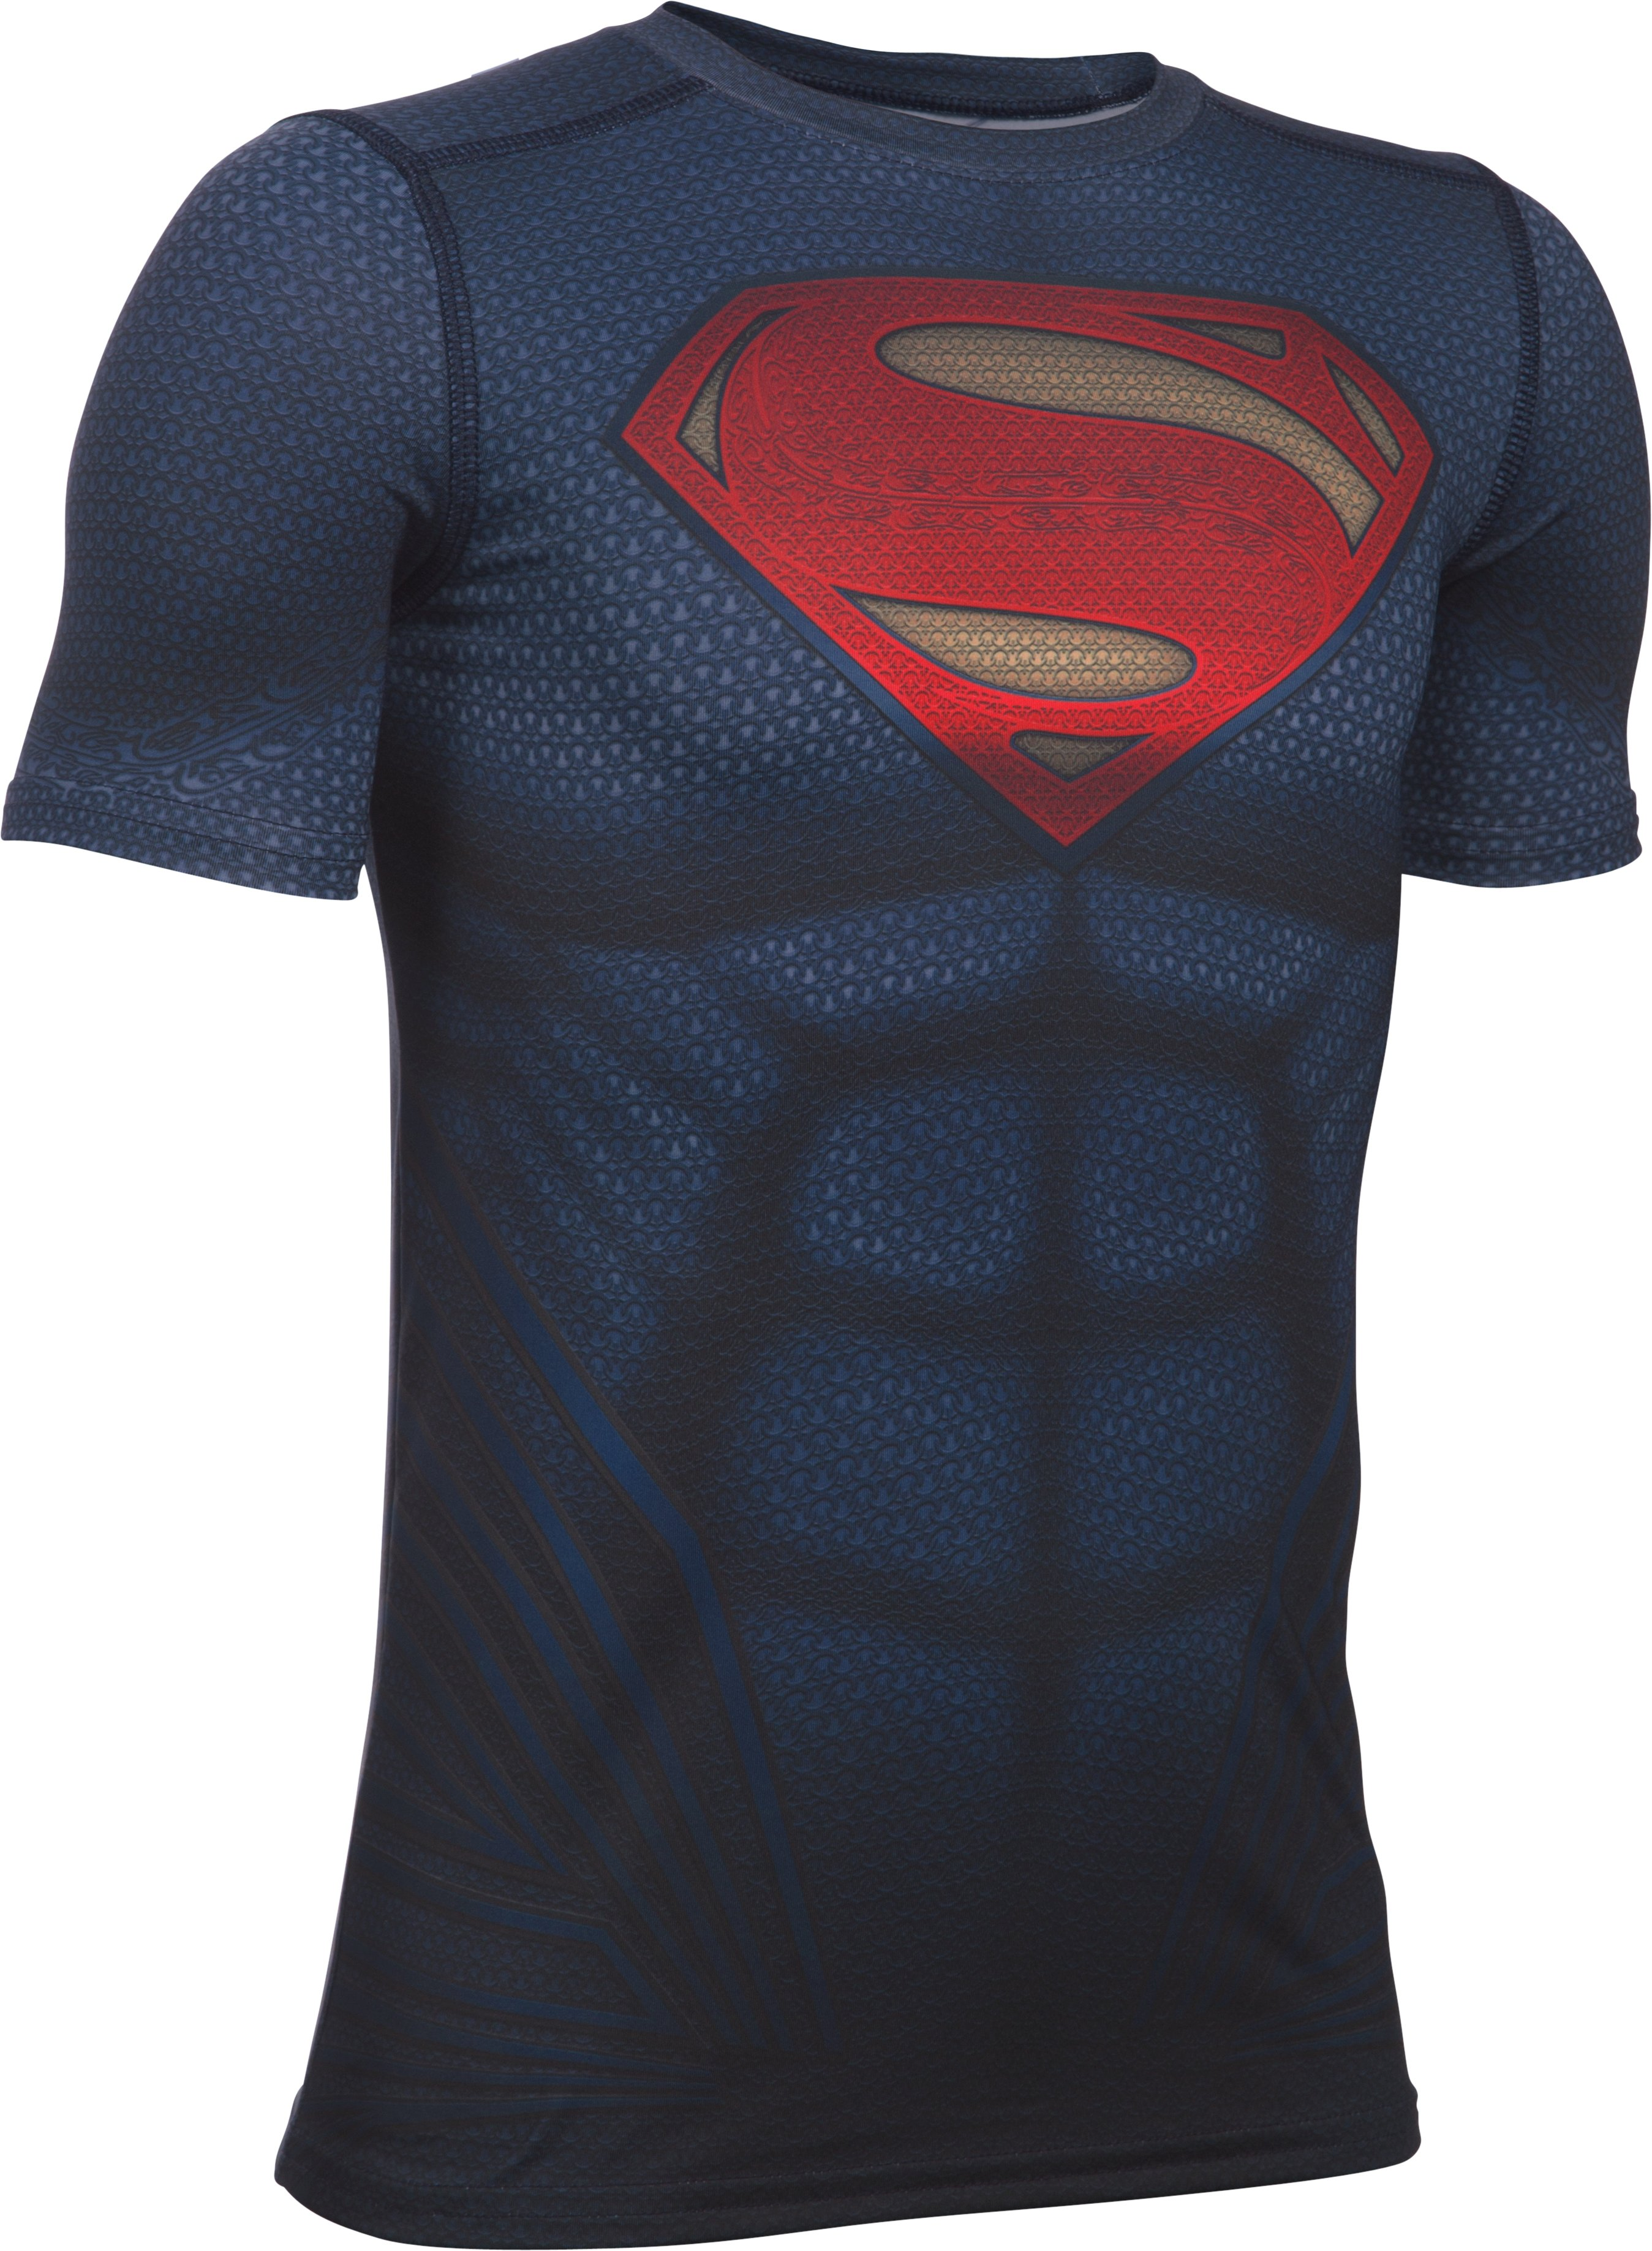 Boys' Under Armour® Superman Fitted Shirt, Midnight Navy